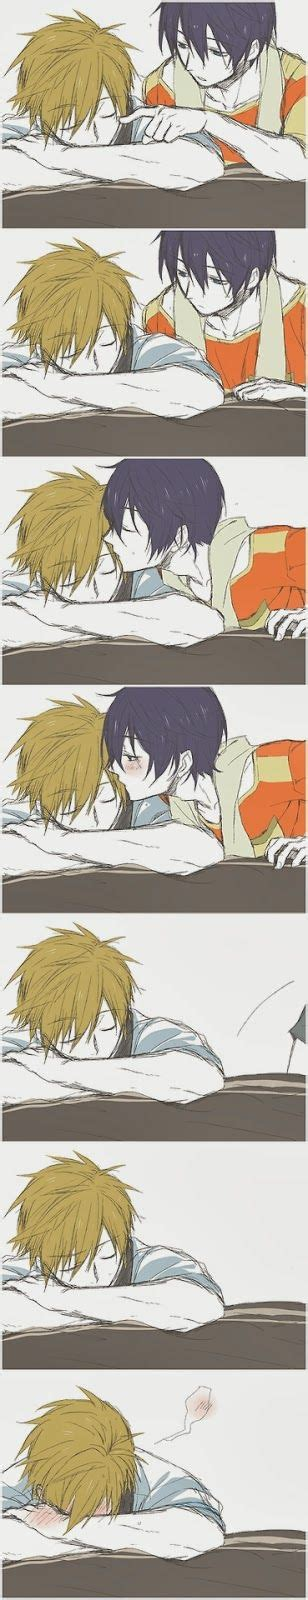 49 Best Images About Makoto And Haru On Pinterest A Kiss